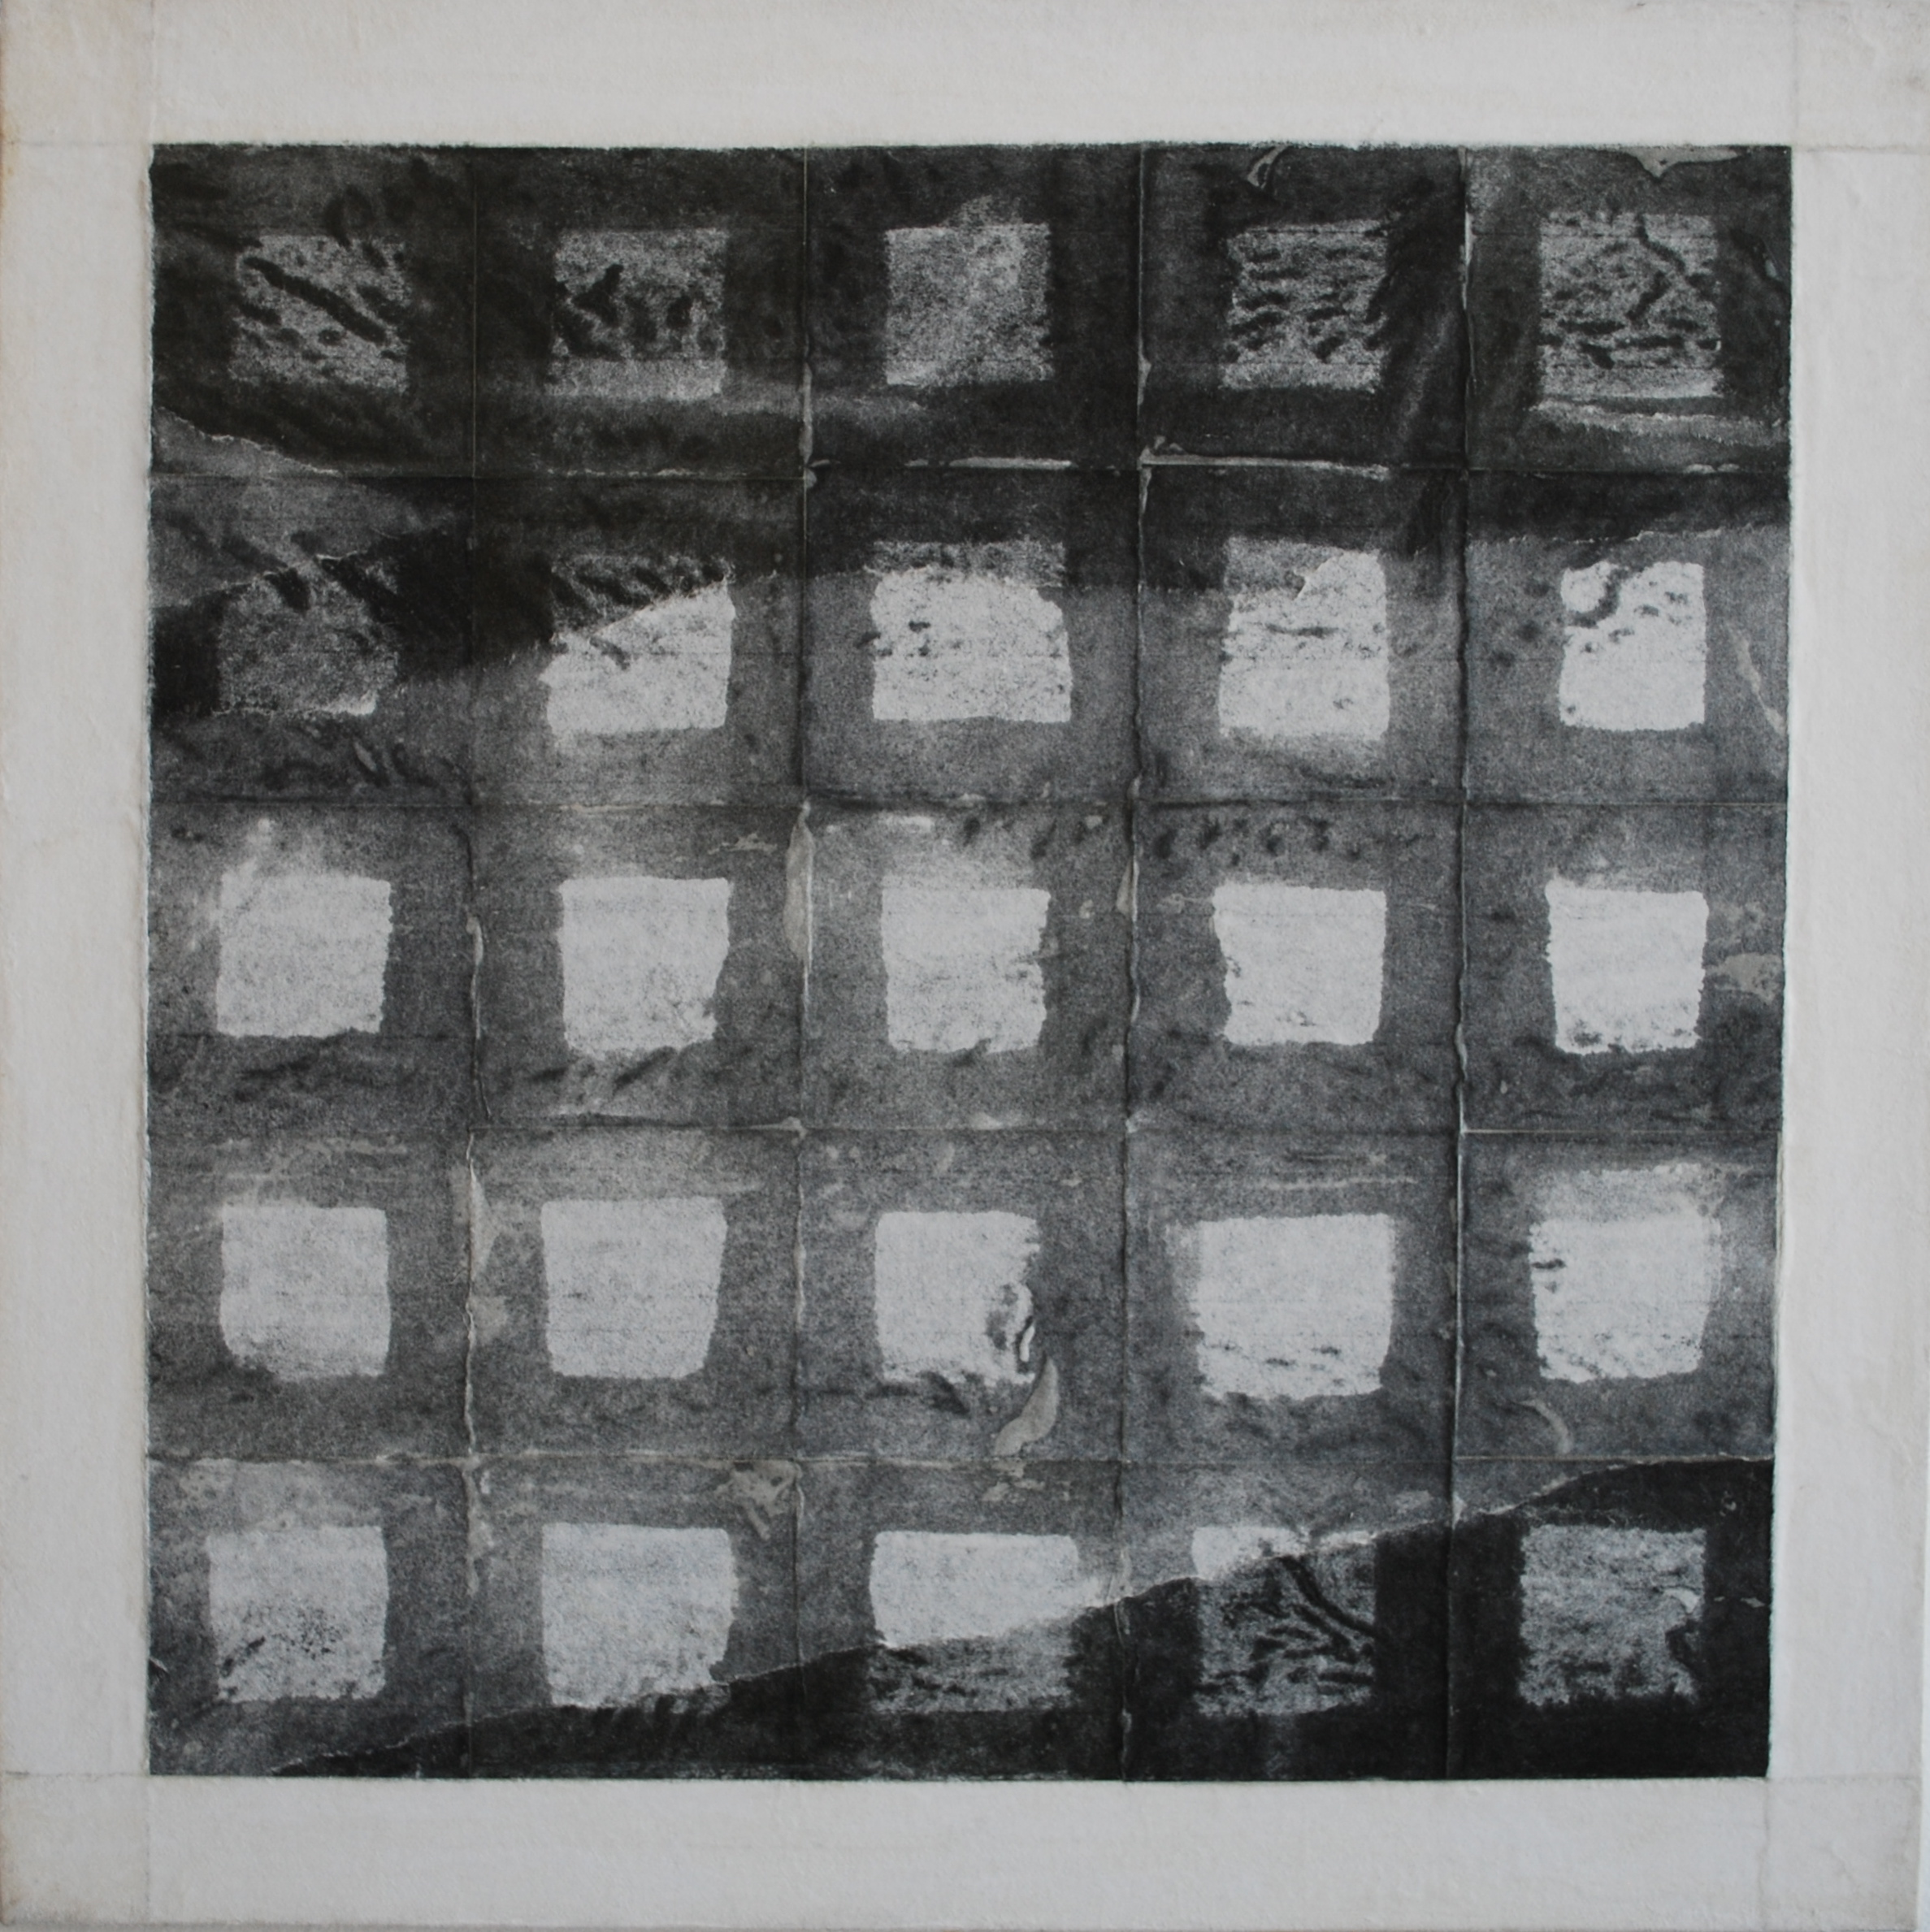 SoHyun Bae, Bojagi #12, 1997, rice-paper on sand-paper on canvas, 18 x 18 inches